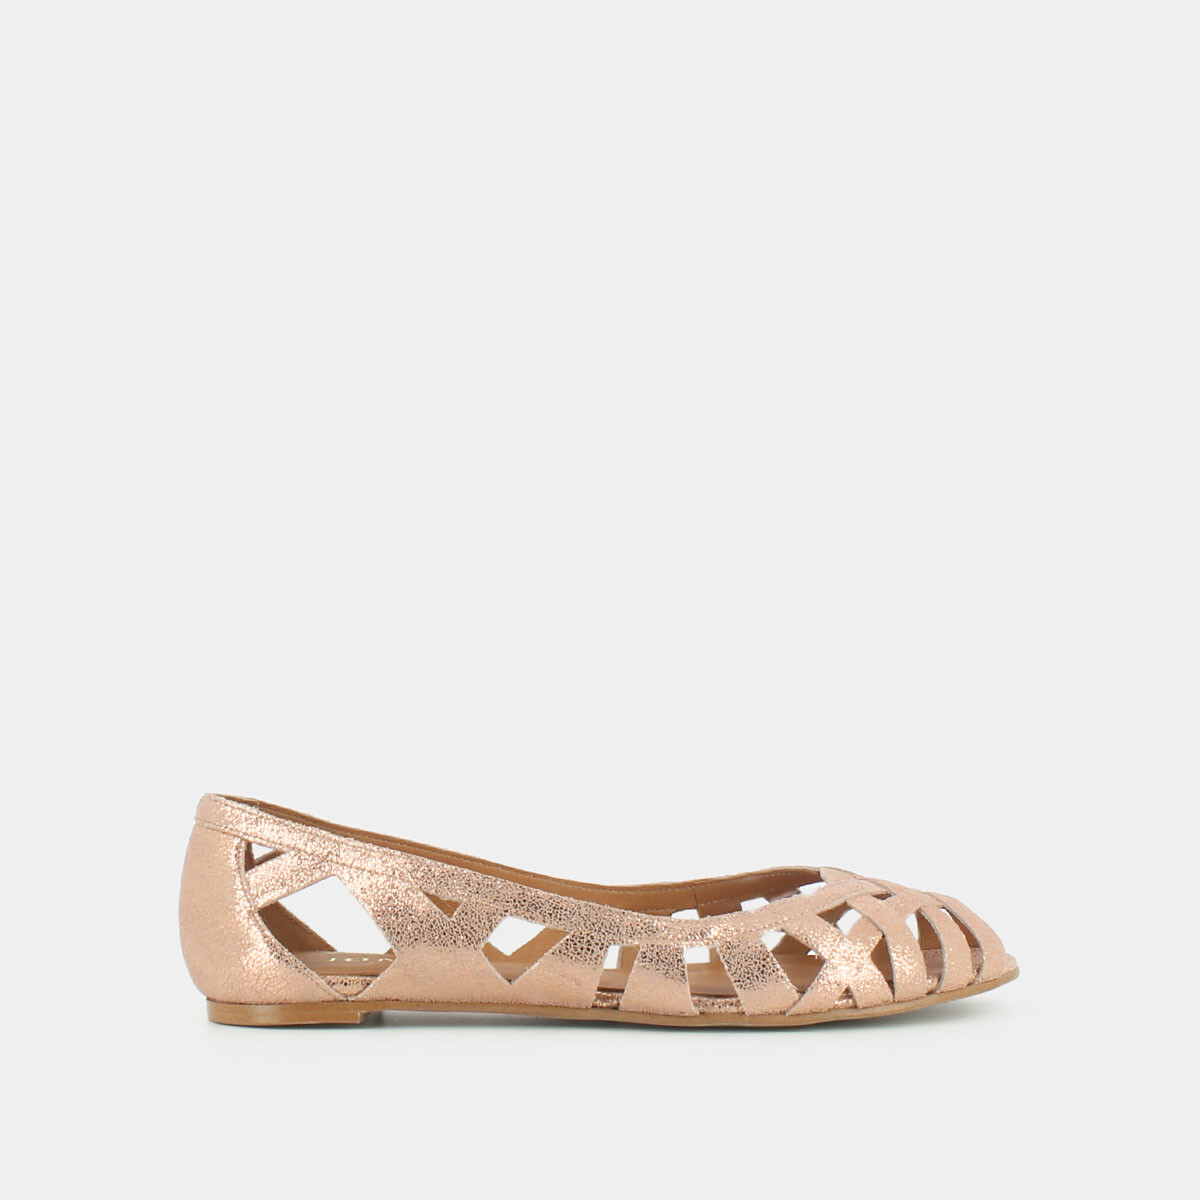 Cut-out ballet flats with laminated copper upper copper